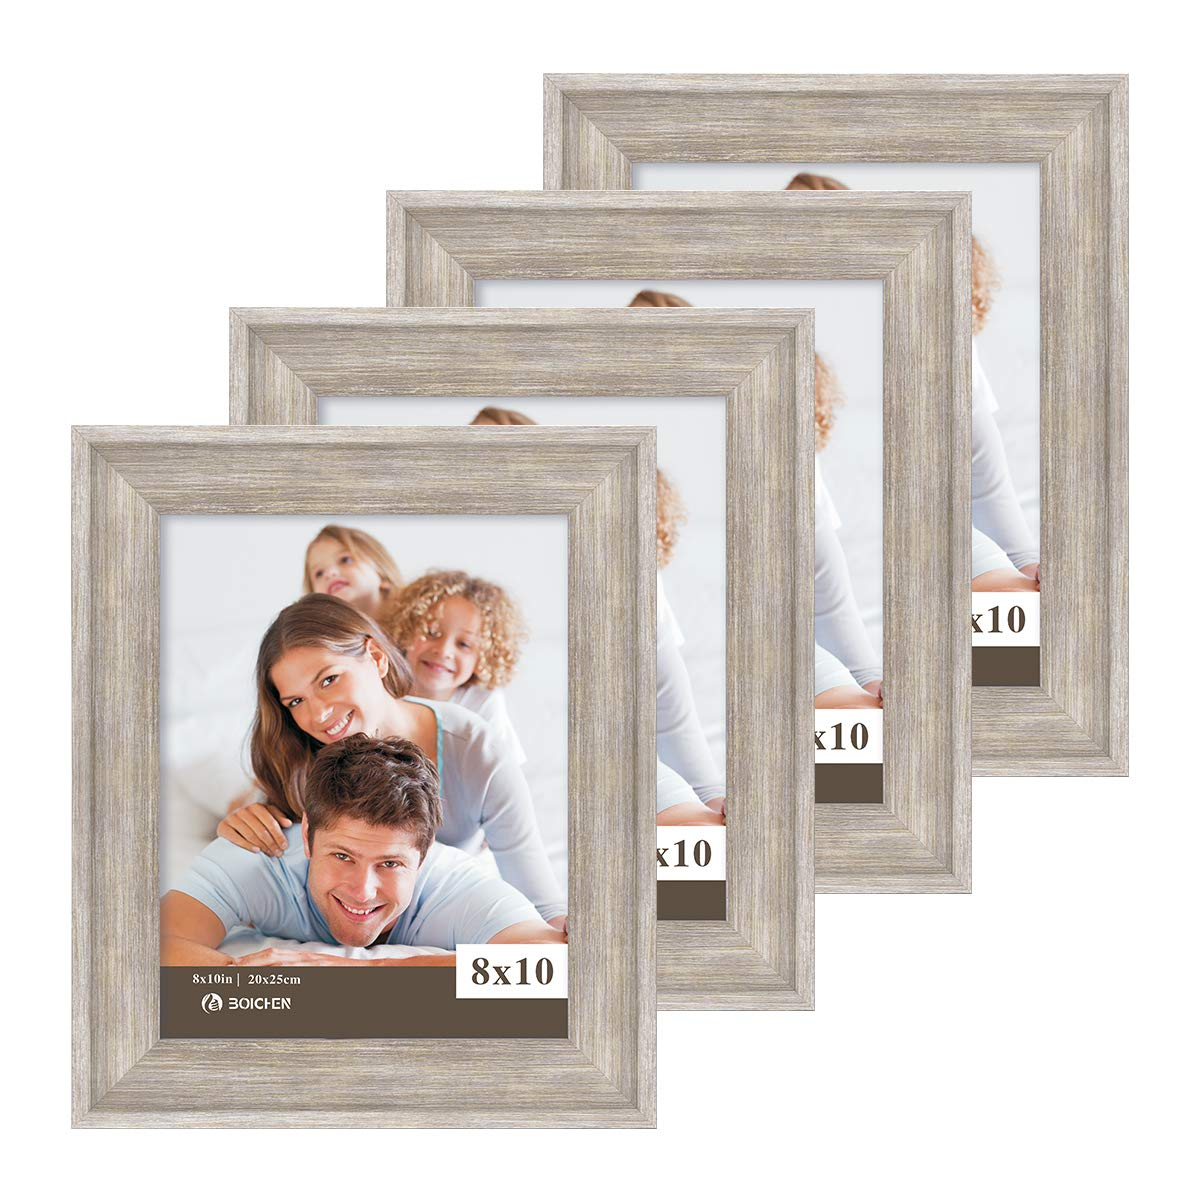 Boichen 8X10 Picture Frames 4 Pack Rustic Style Wood Pattern High Definition Glass for Tabletop Display and Wall mounting Photo Frame Silver Grey Wood